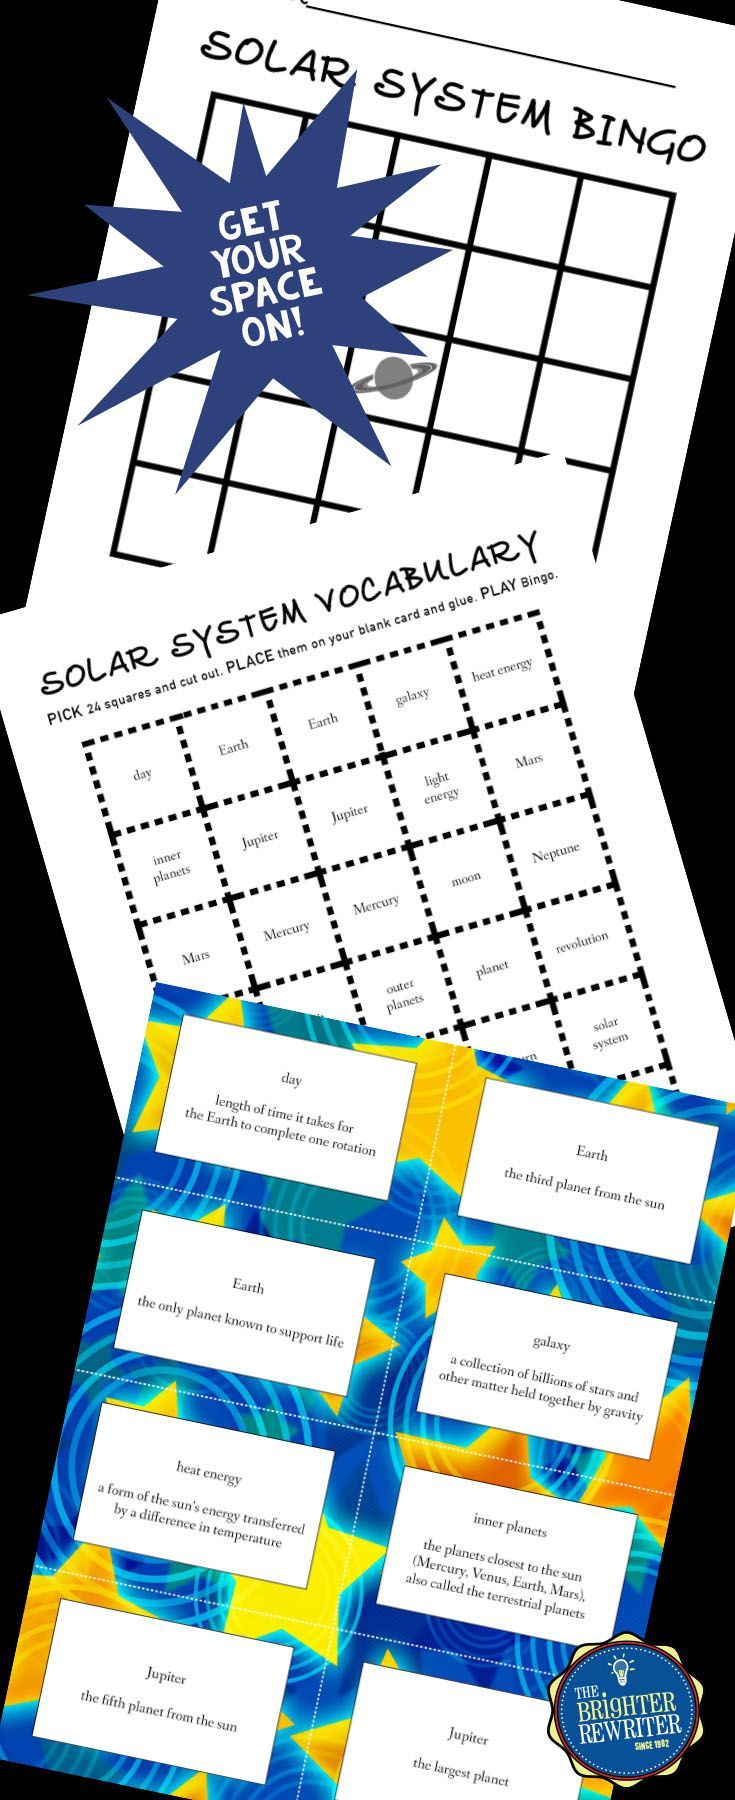 Bingo game reviews facts about the 8 planets and other solar system vocabulary. Students create their own bingo cards either by writing or by cutting out and attaching 24 choices onto a blank bingo card.